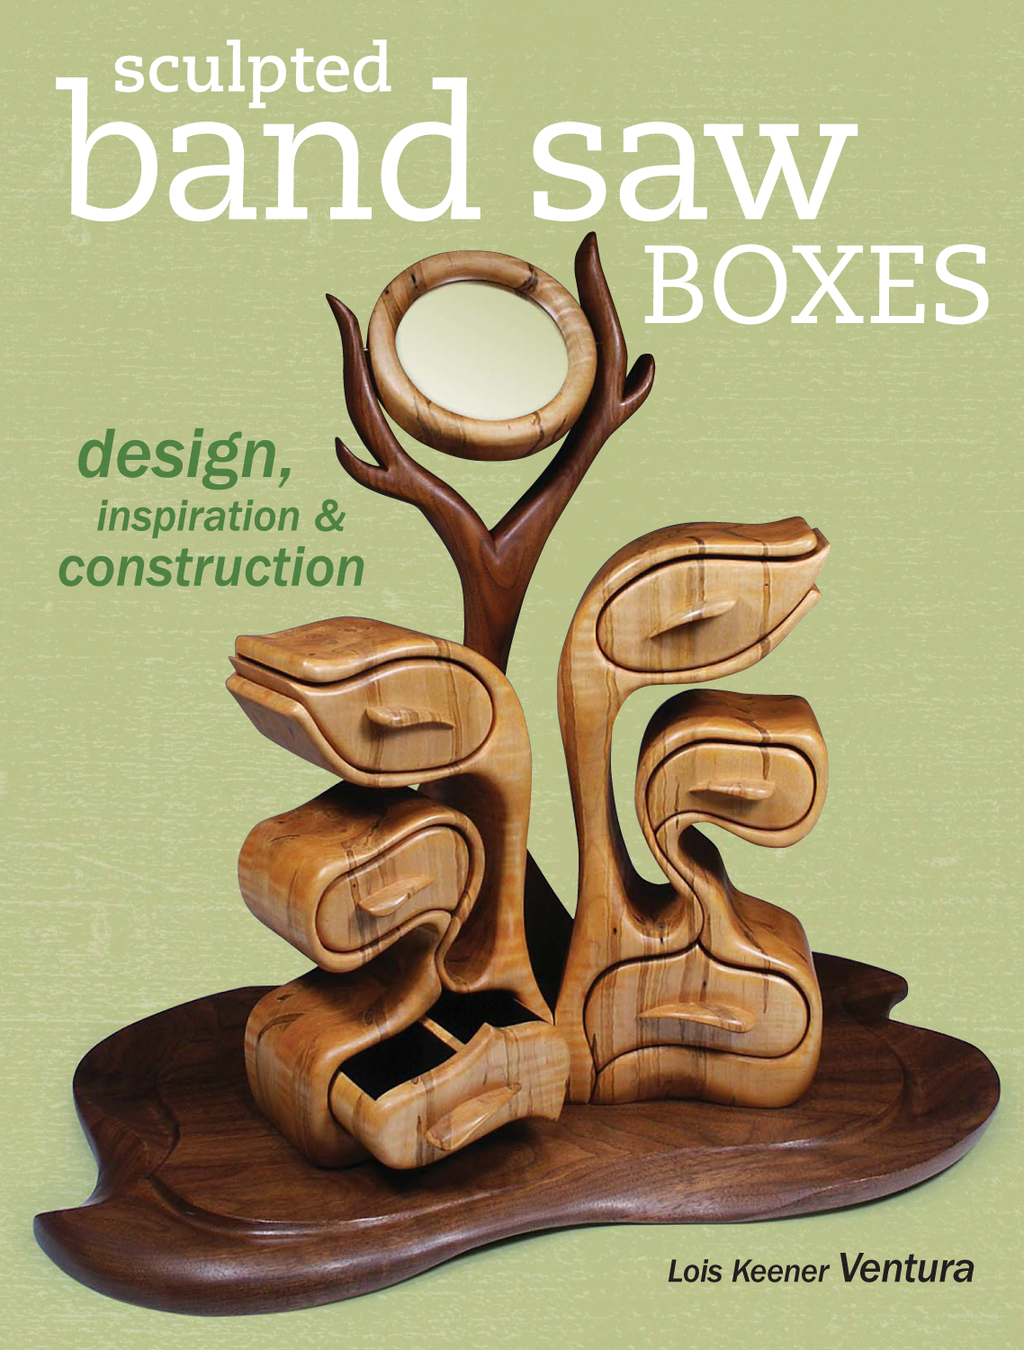 Sculpted Band Saw Boxes Design,  Inspiration & Construction